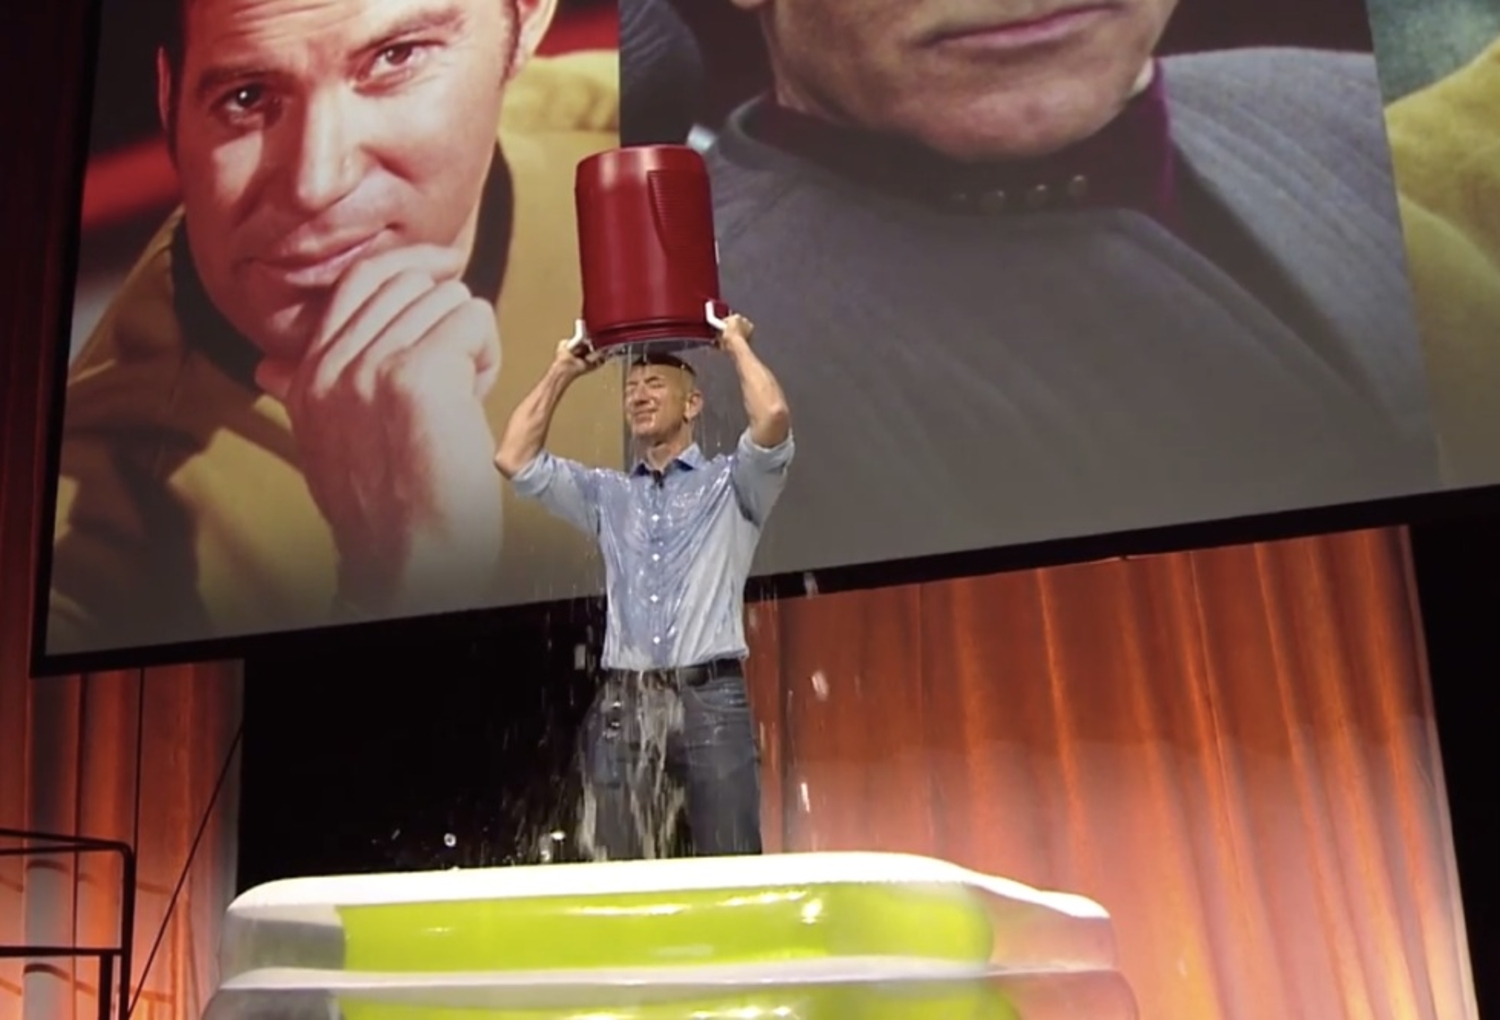 The Best Ice Bucket Challenge Videos From Tech's Biggest Names